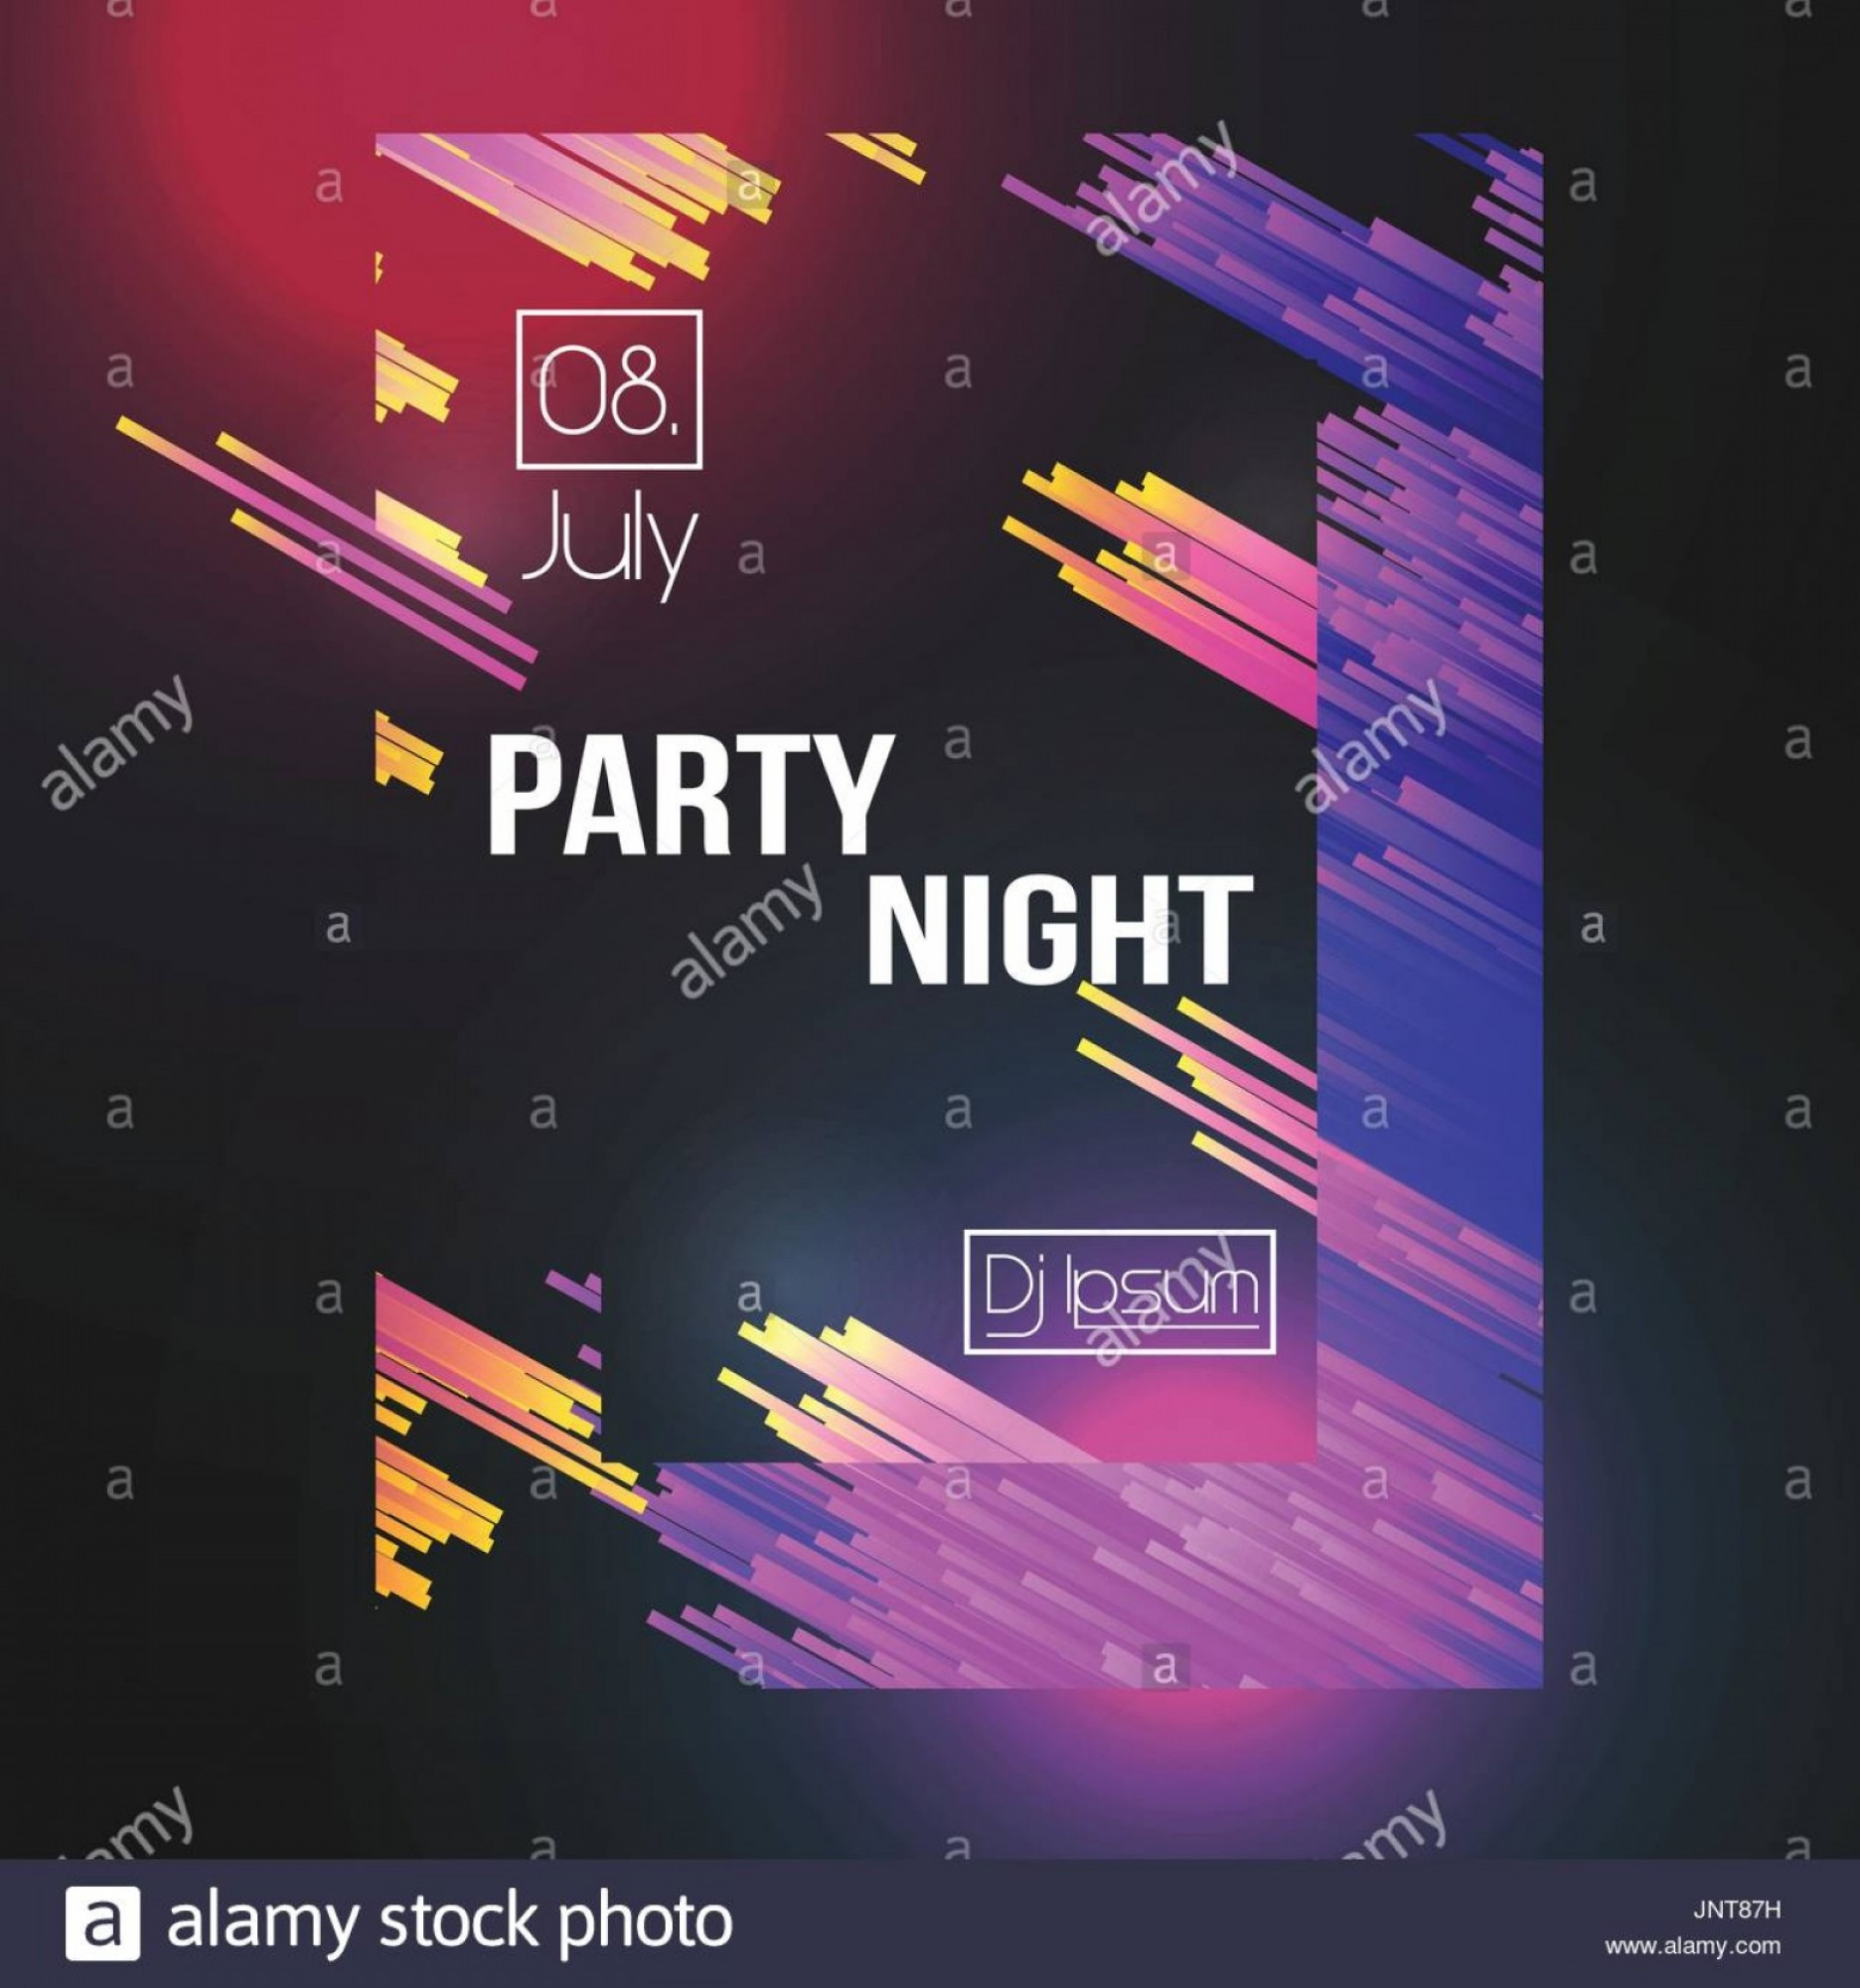 Club Flyer Vector: Stock Photo Modern Club Party Flyer Vector Illustration